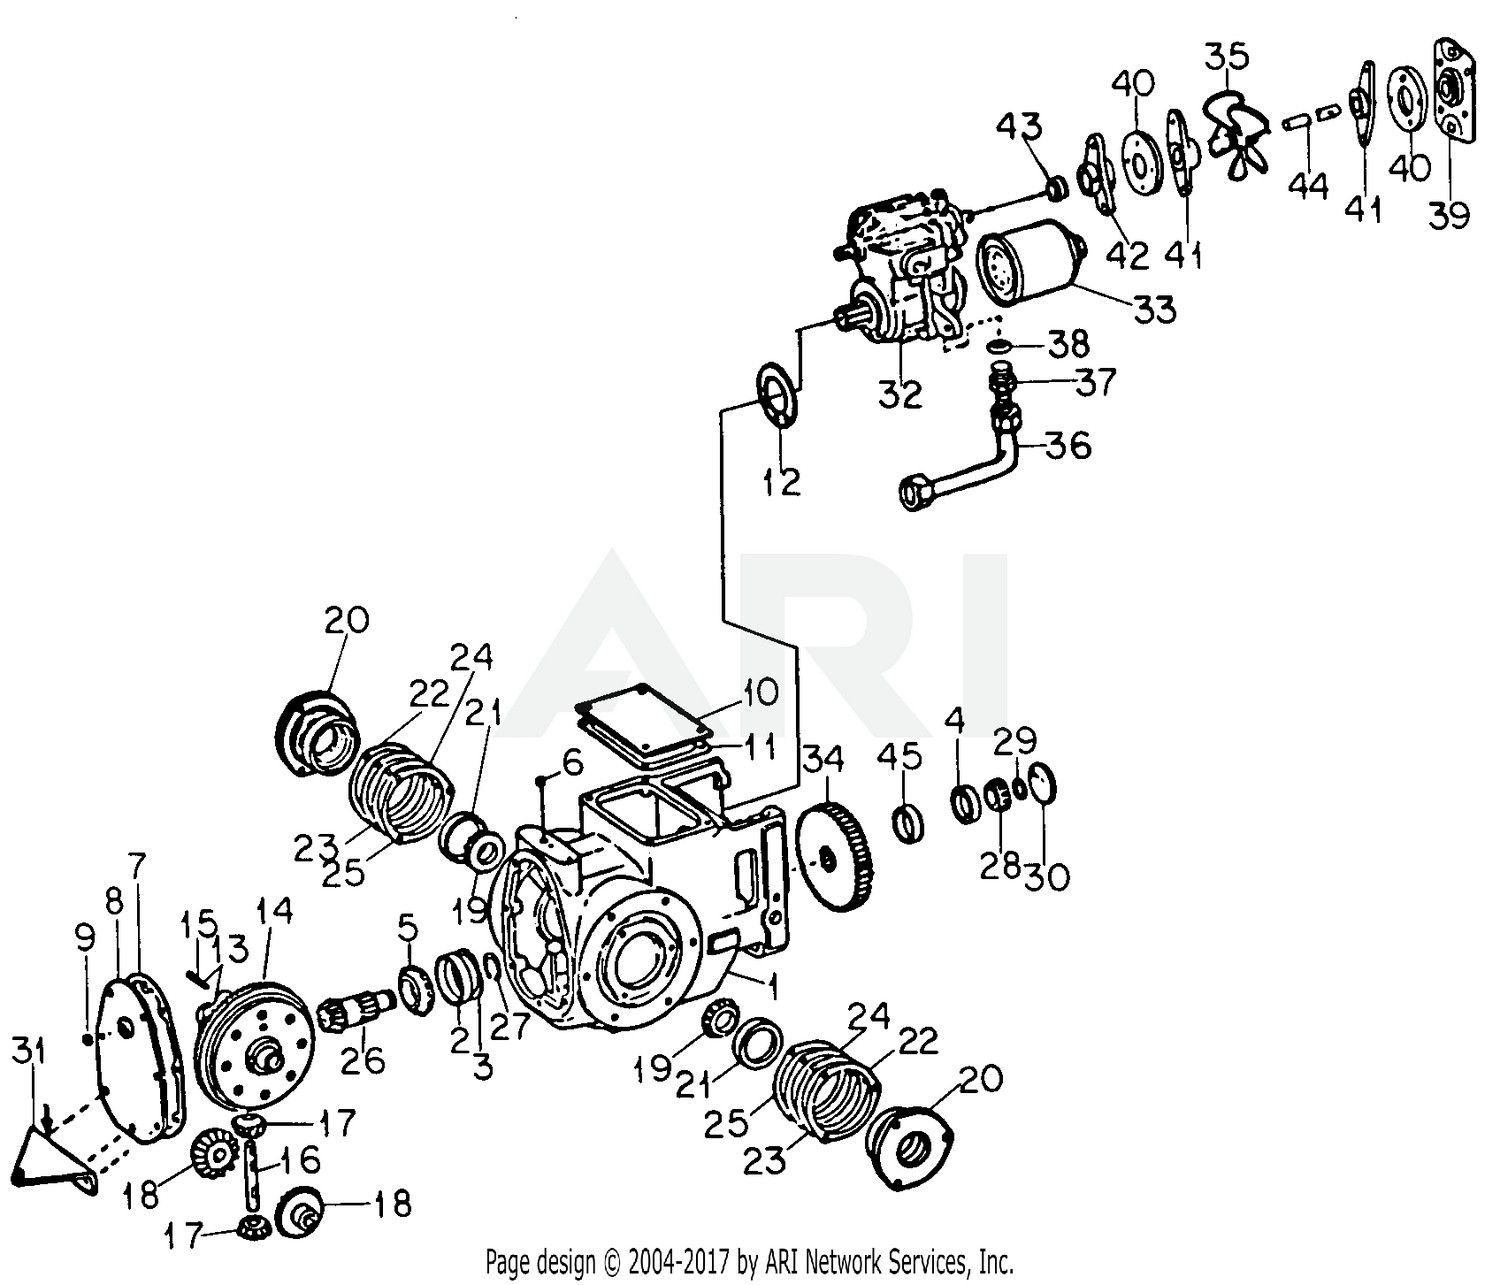 Case Ih Parts Diagram Cub Cadet Parts Diagrams Cub Cadet 1914 145 986 100 145 986 399 146 Of Case Ih Parts Diagram